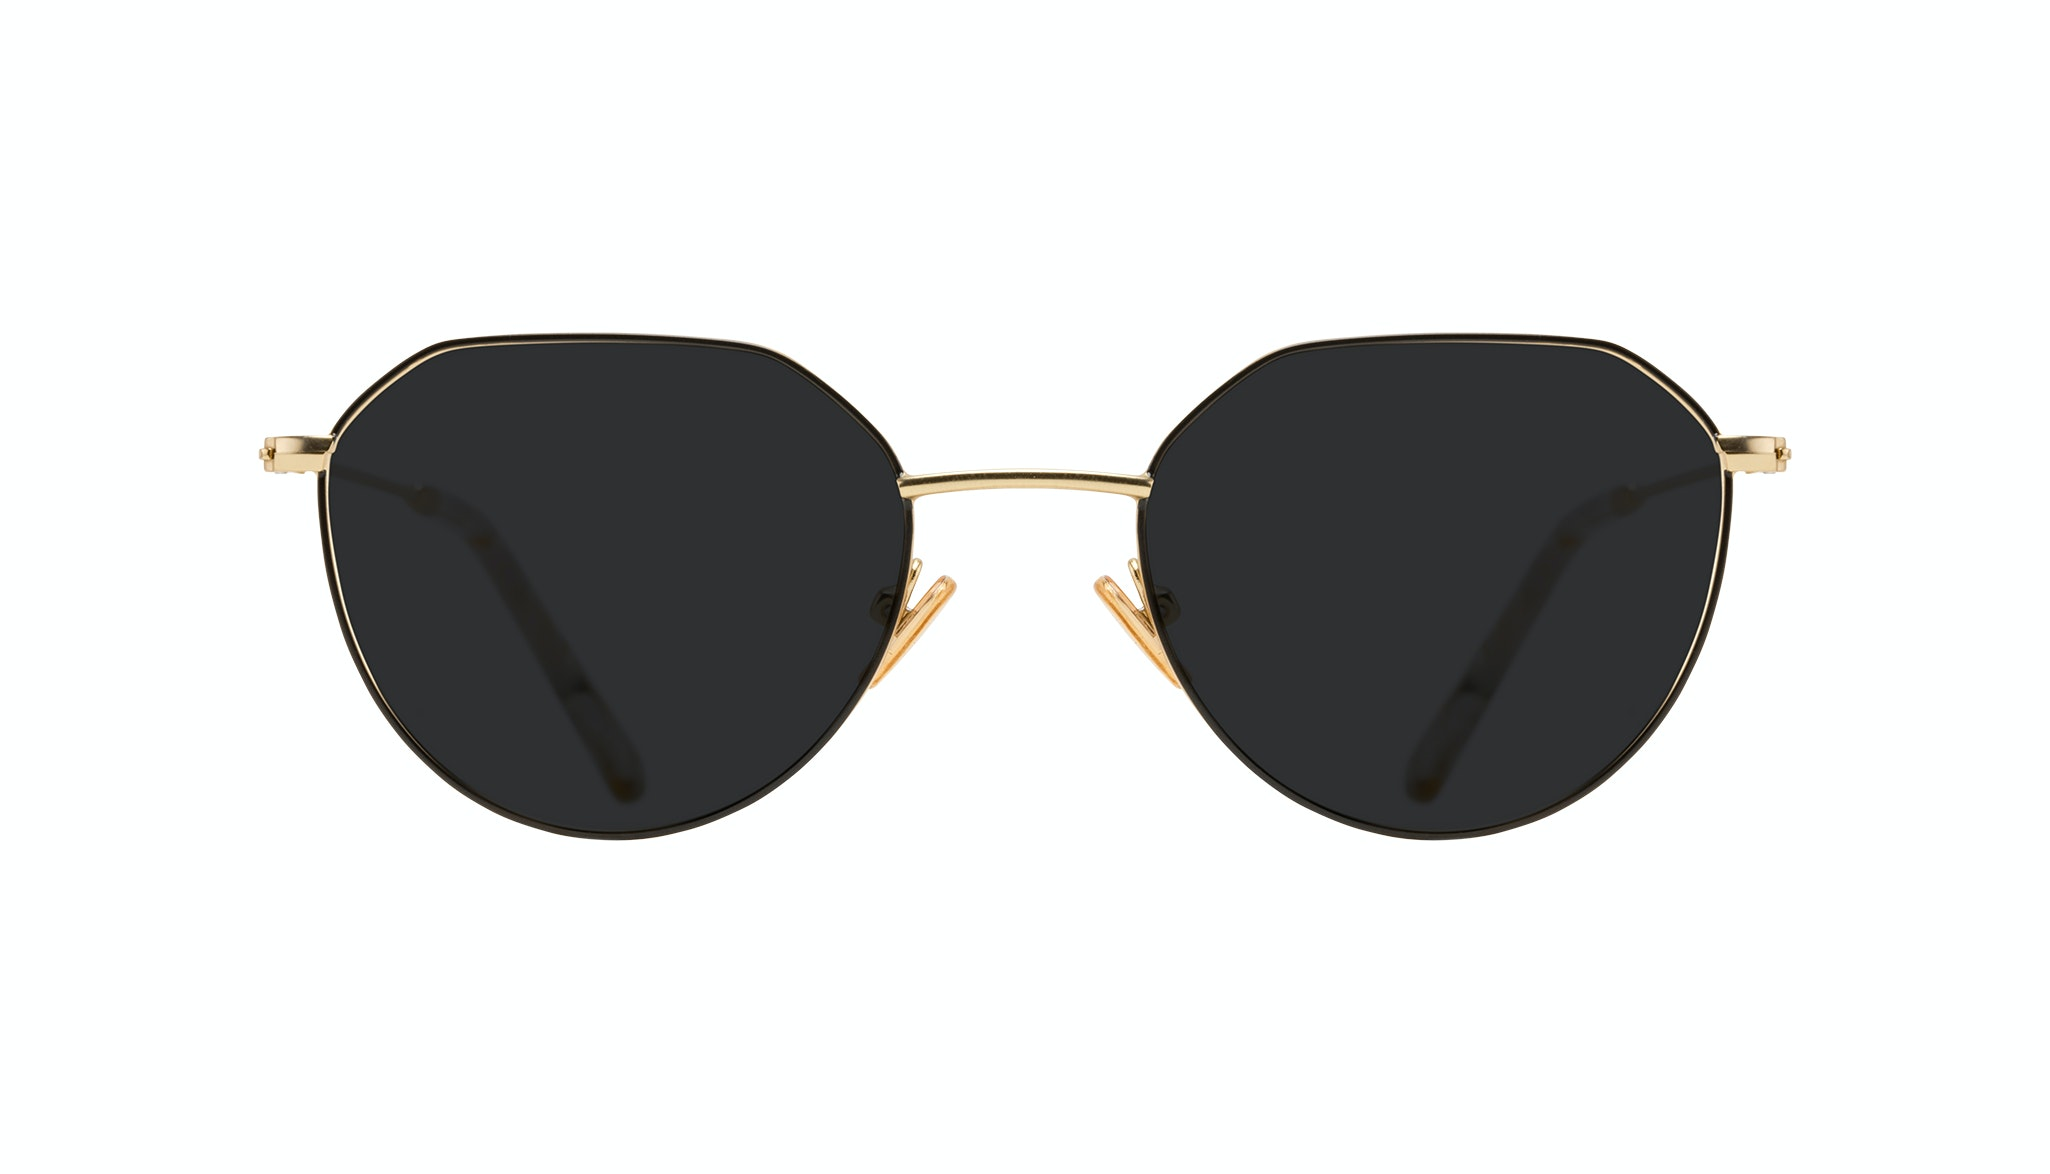 Affordable Fashion Glasses Round Sunglasses Women Prism Deep Gold